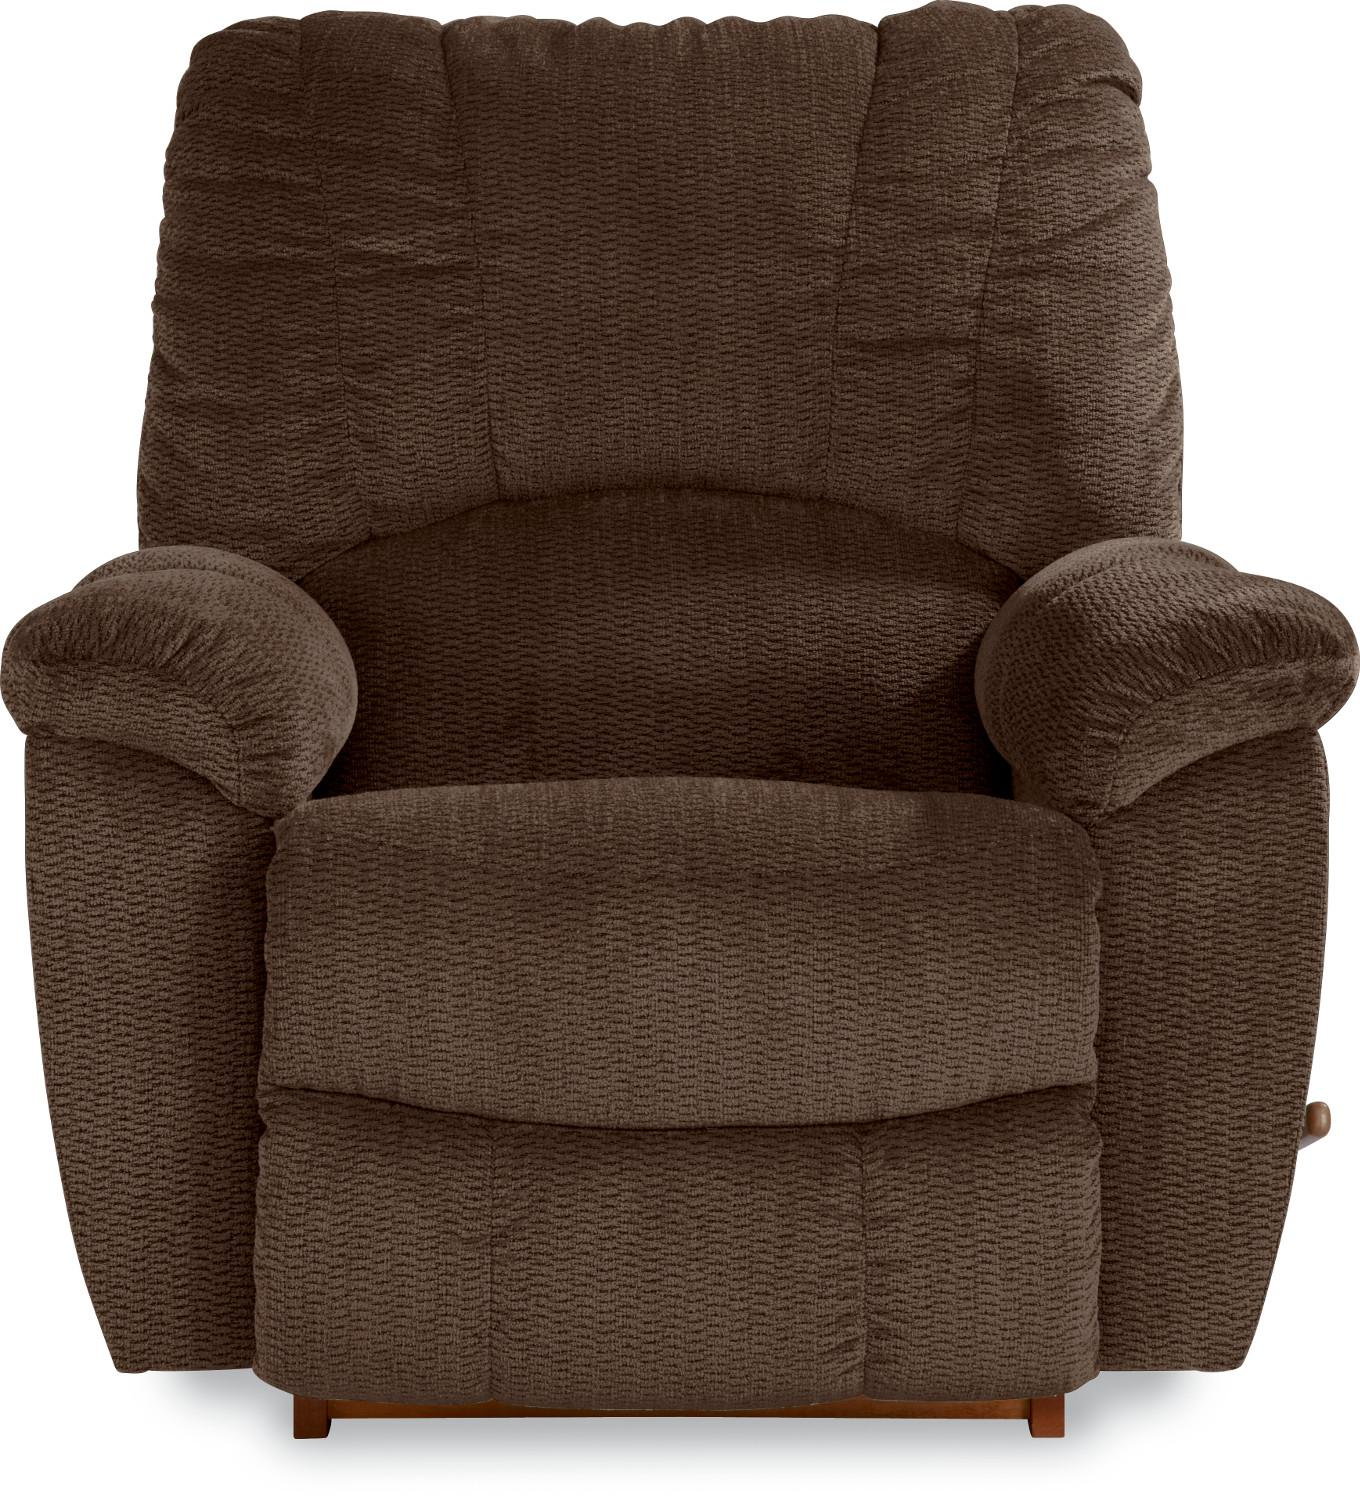 Casual RECLINA-ROCKER® with Channel-Stitched Back